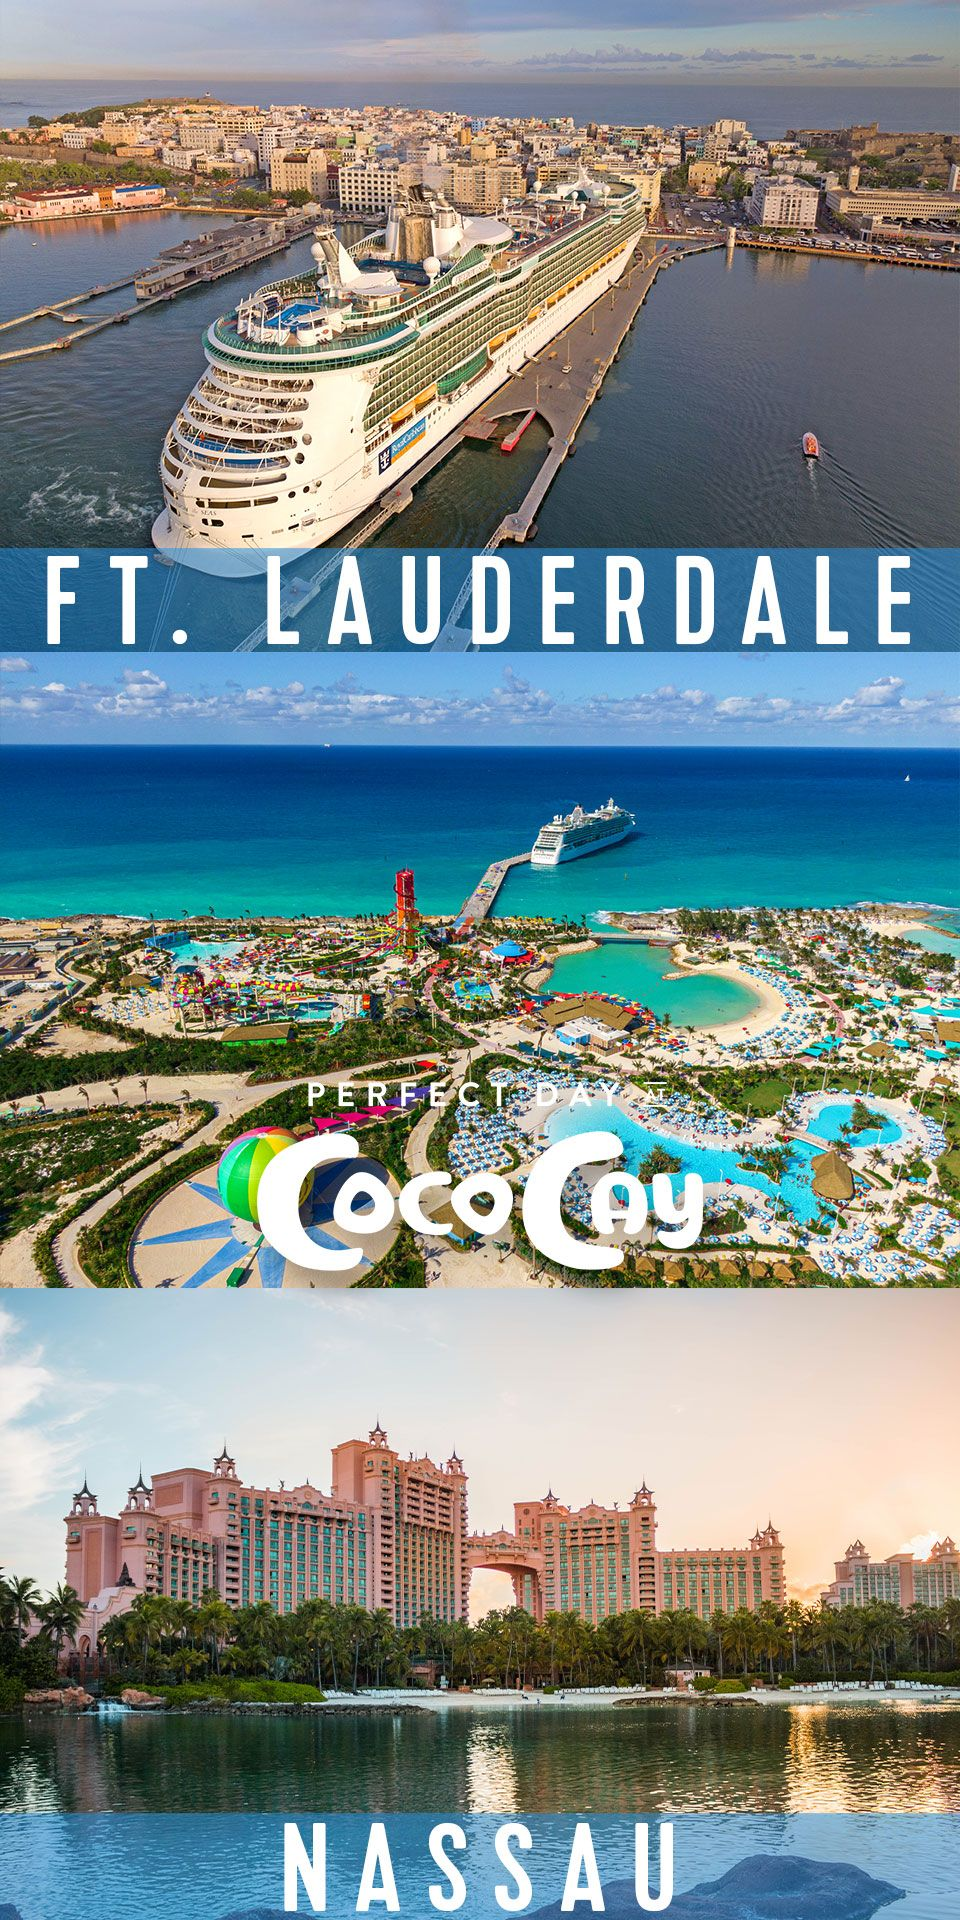 3 Night Bahamas & Perfect Day Cruise On Independence Of